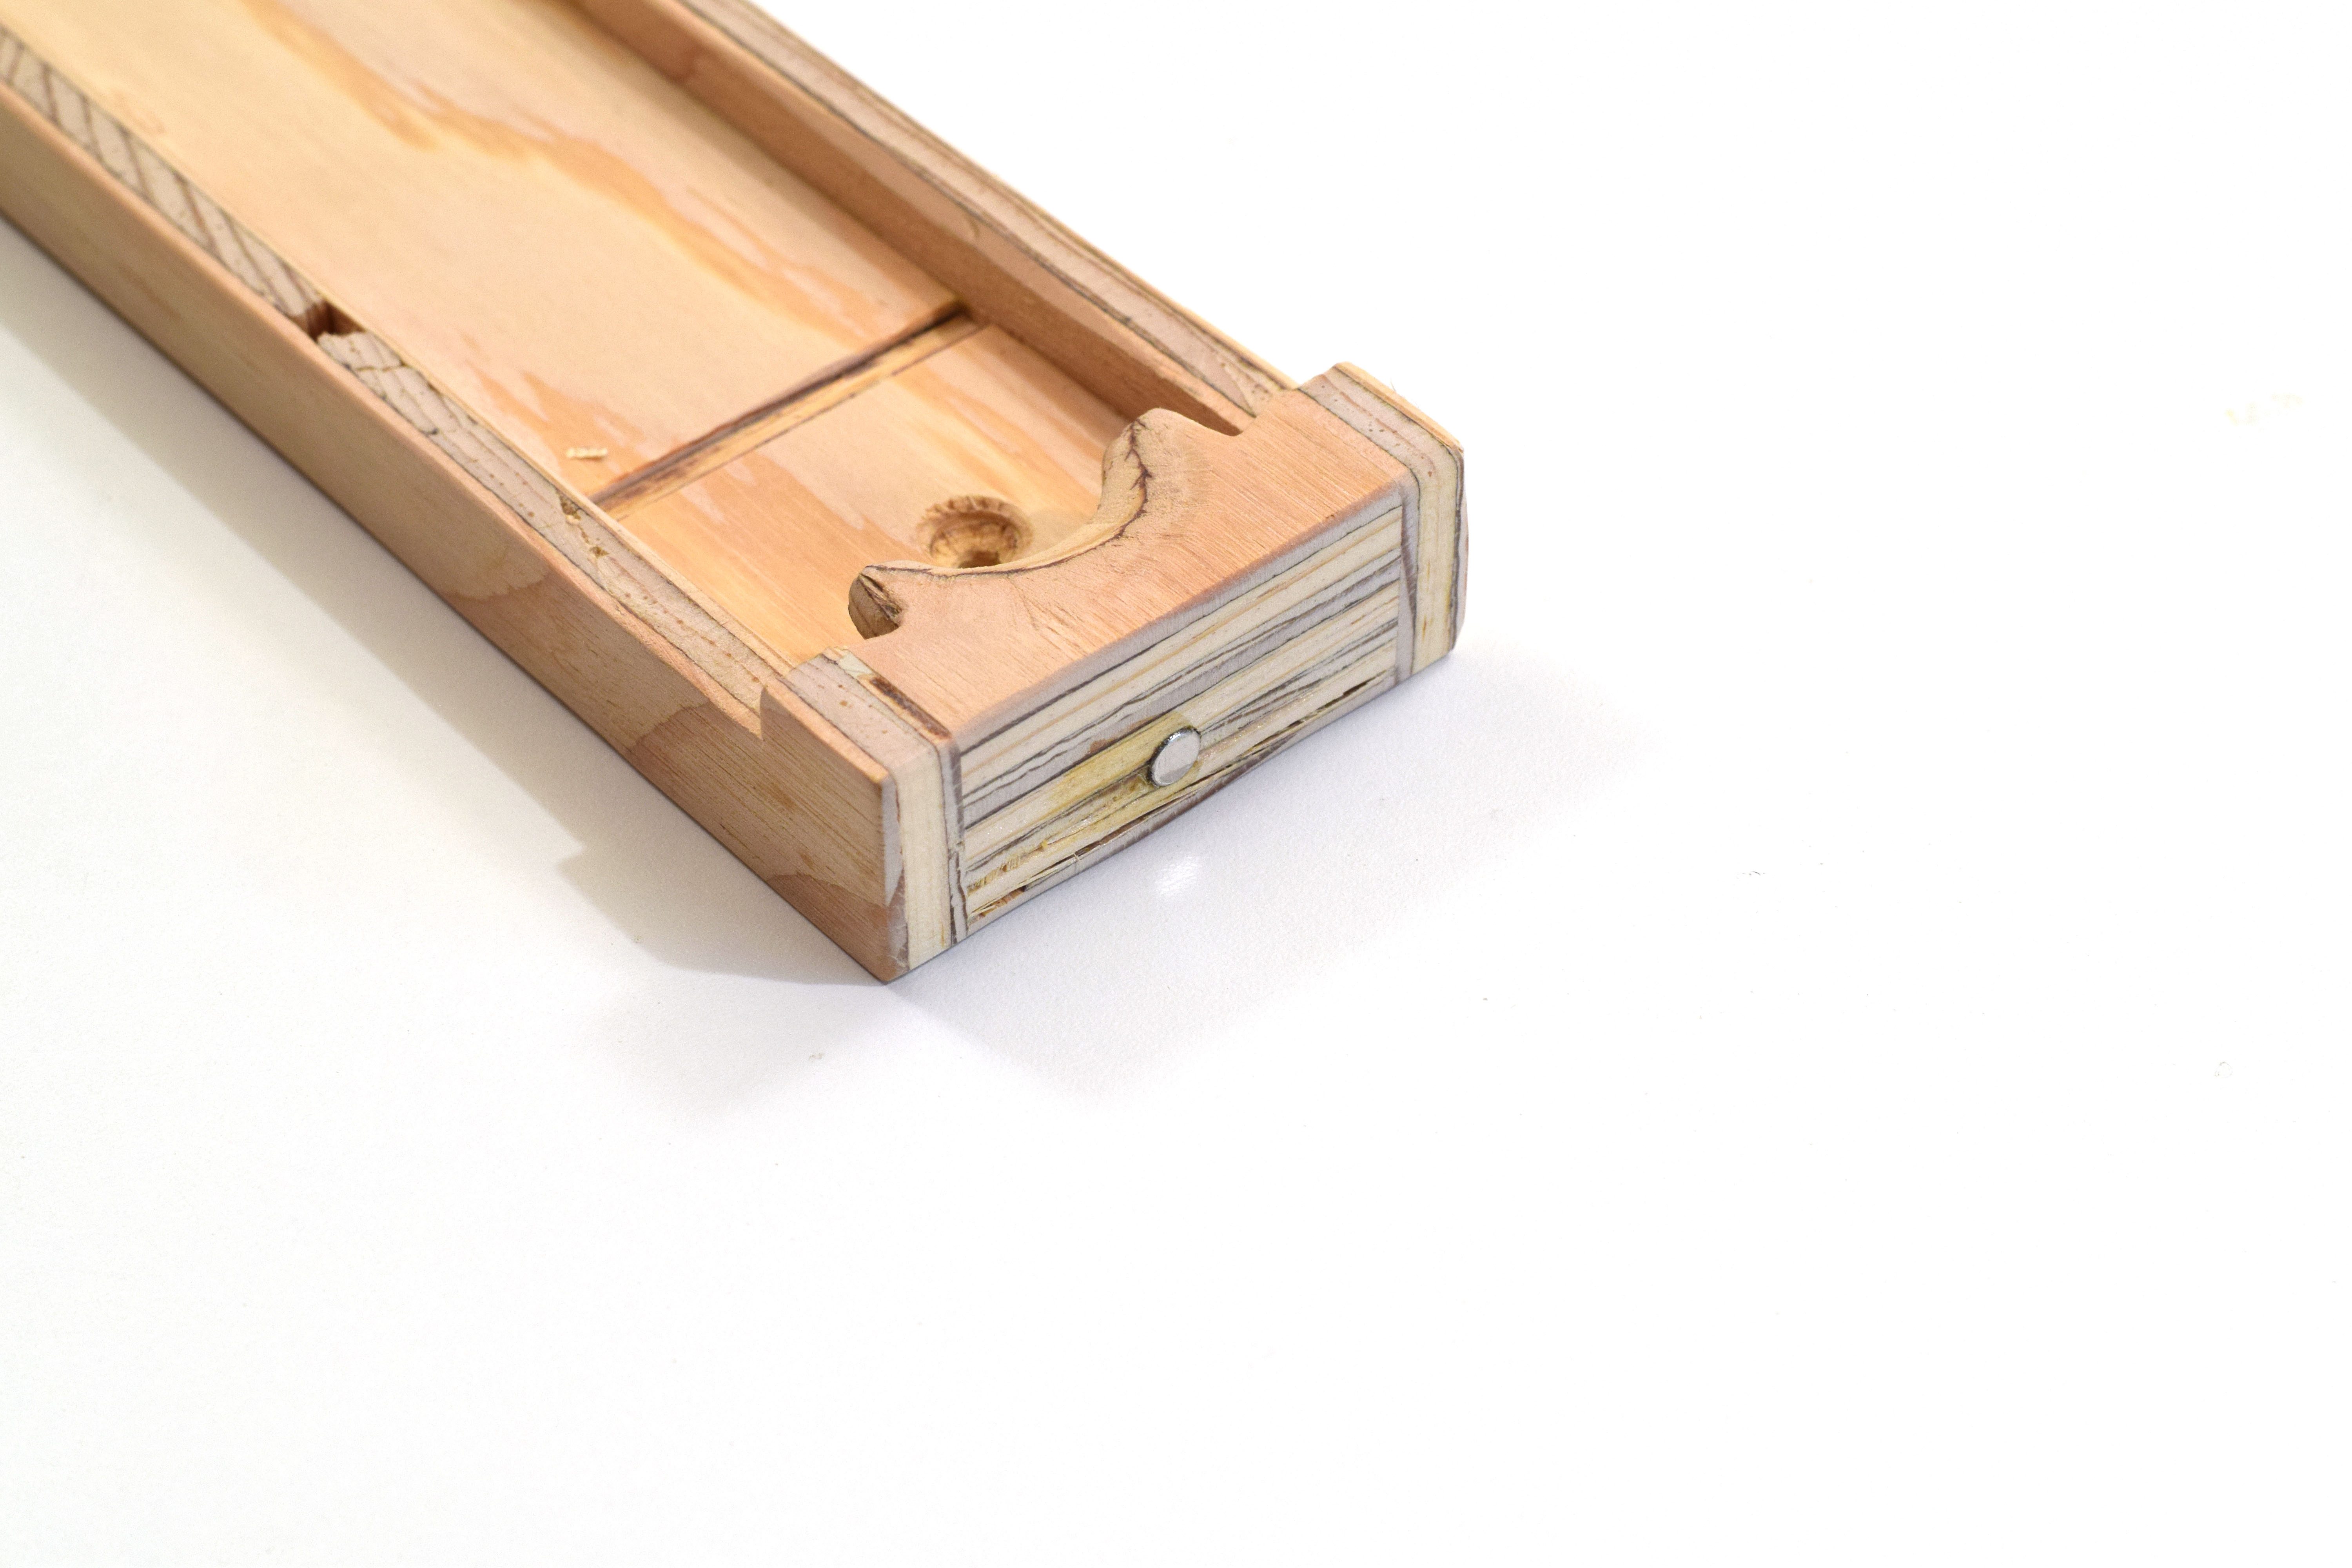 Picture of Hand Plane Holder